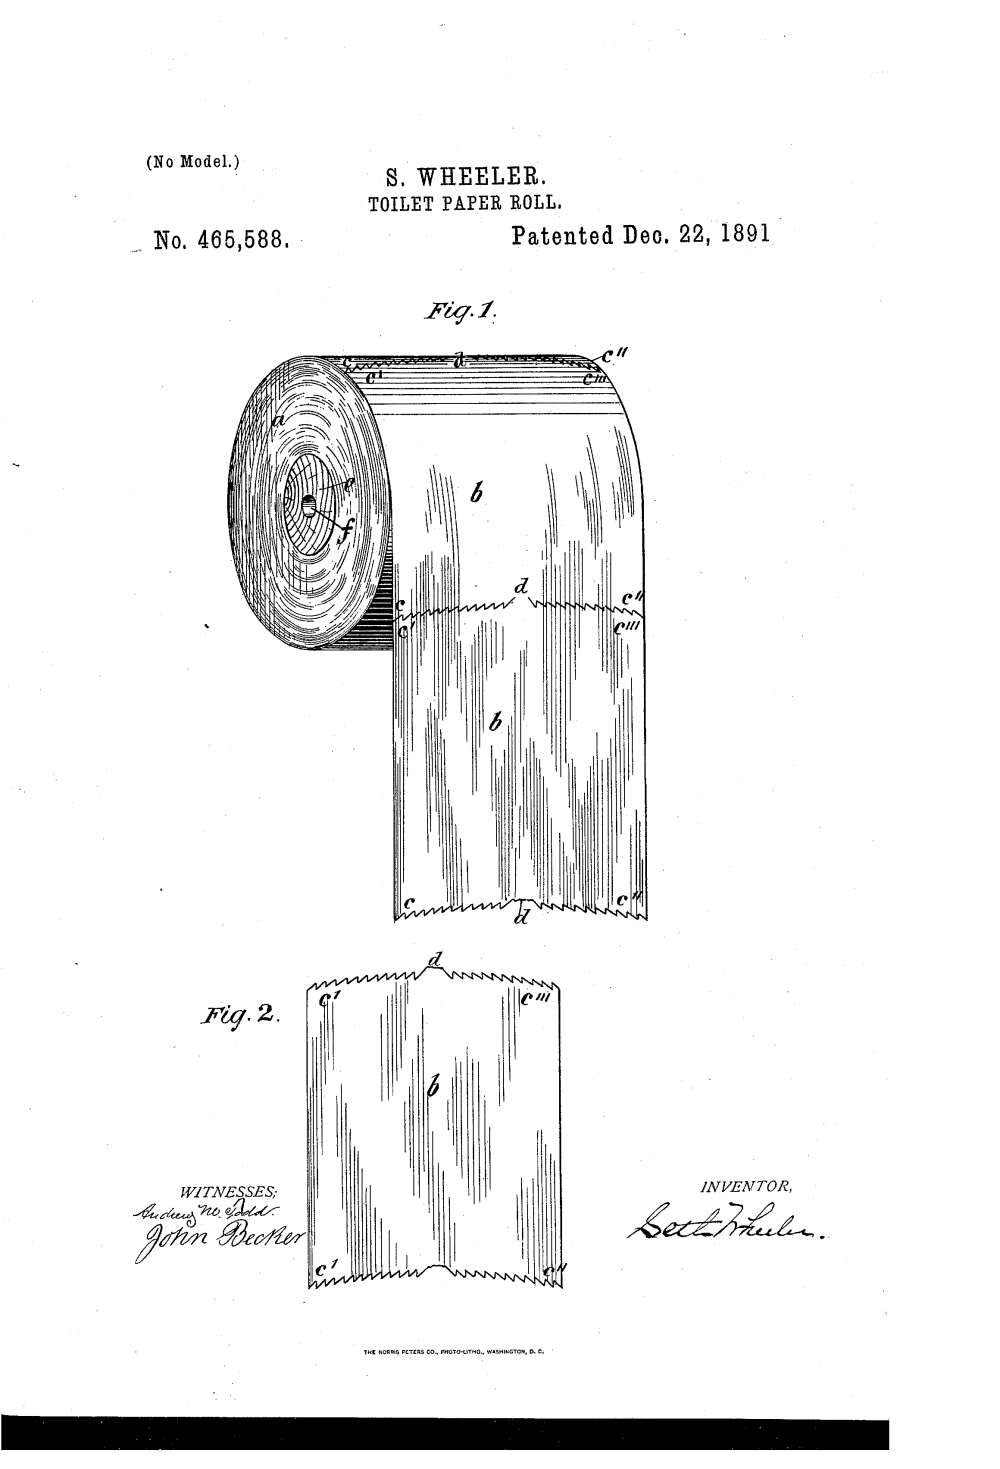 Perforated toiler paper patent